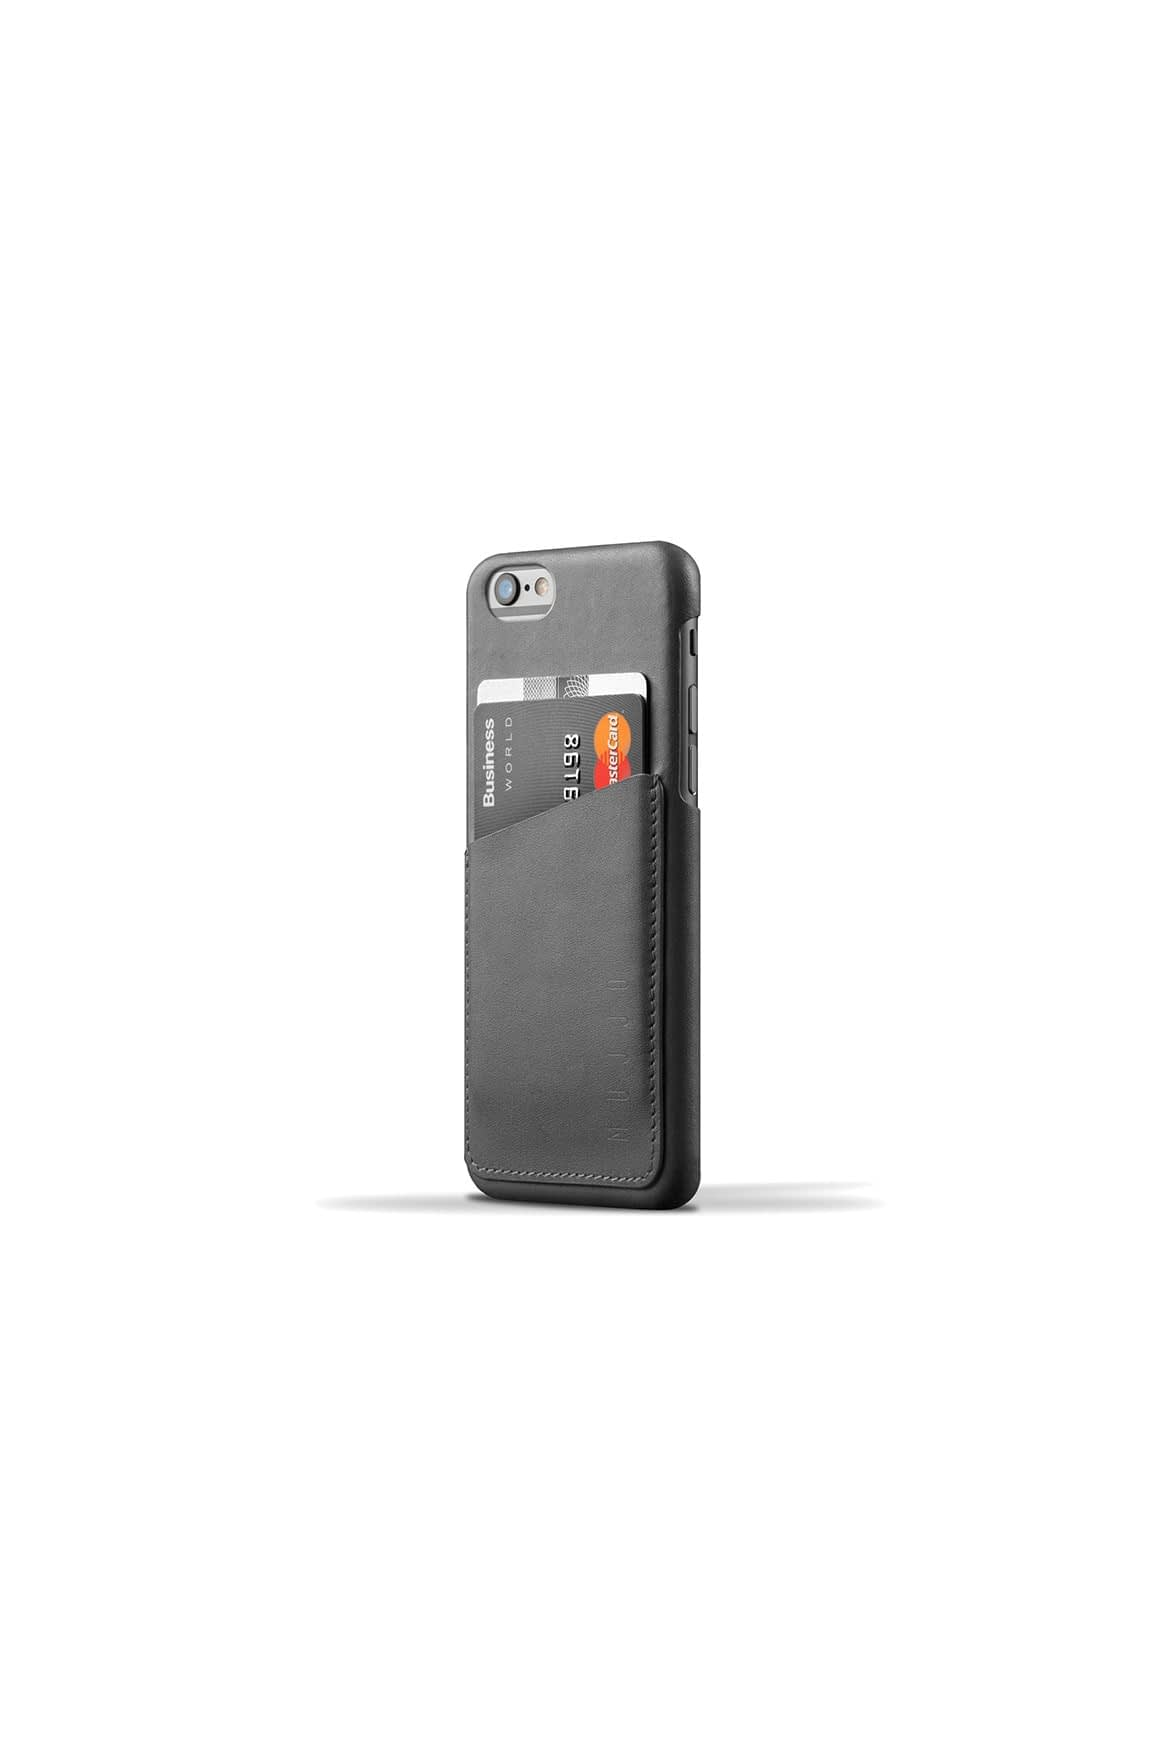 Leather Wallet Case for iPhone 6 Gray 003